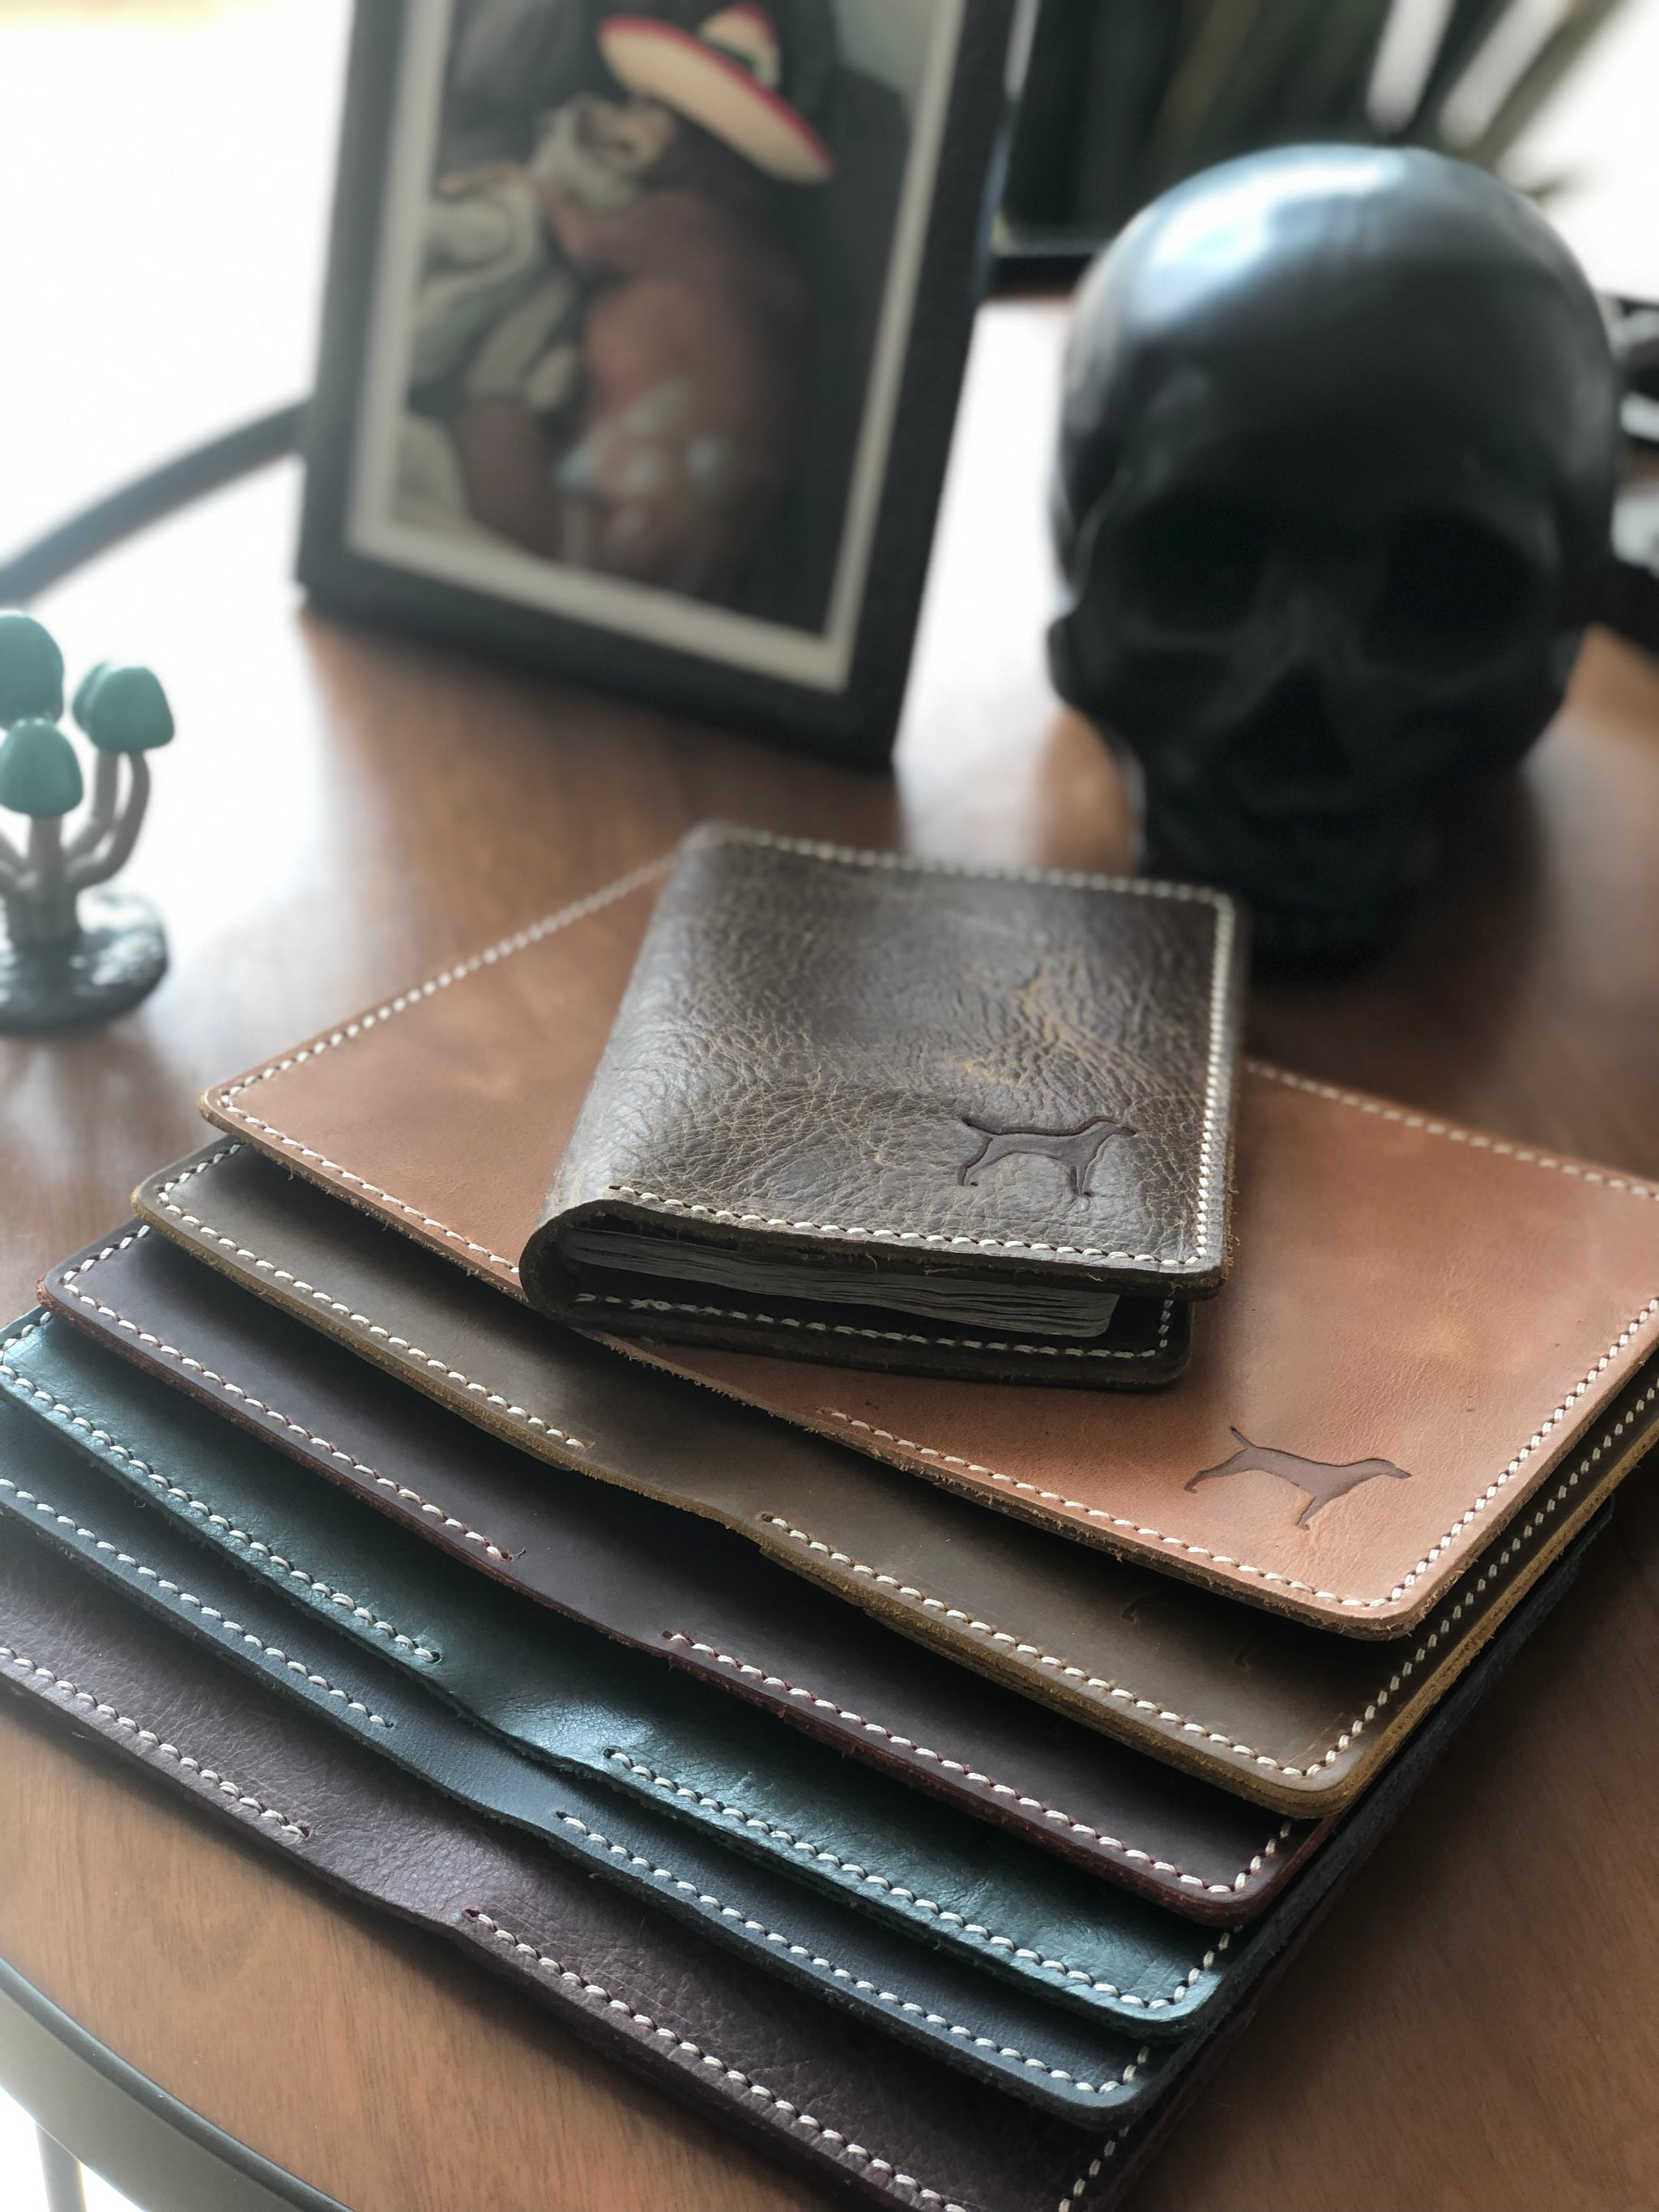 The Oaxaca passport holder - cowhide and leather